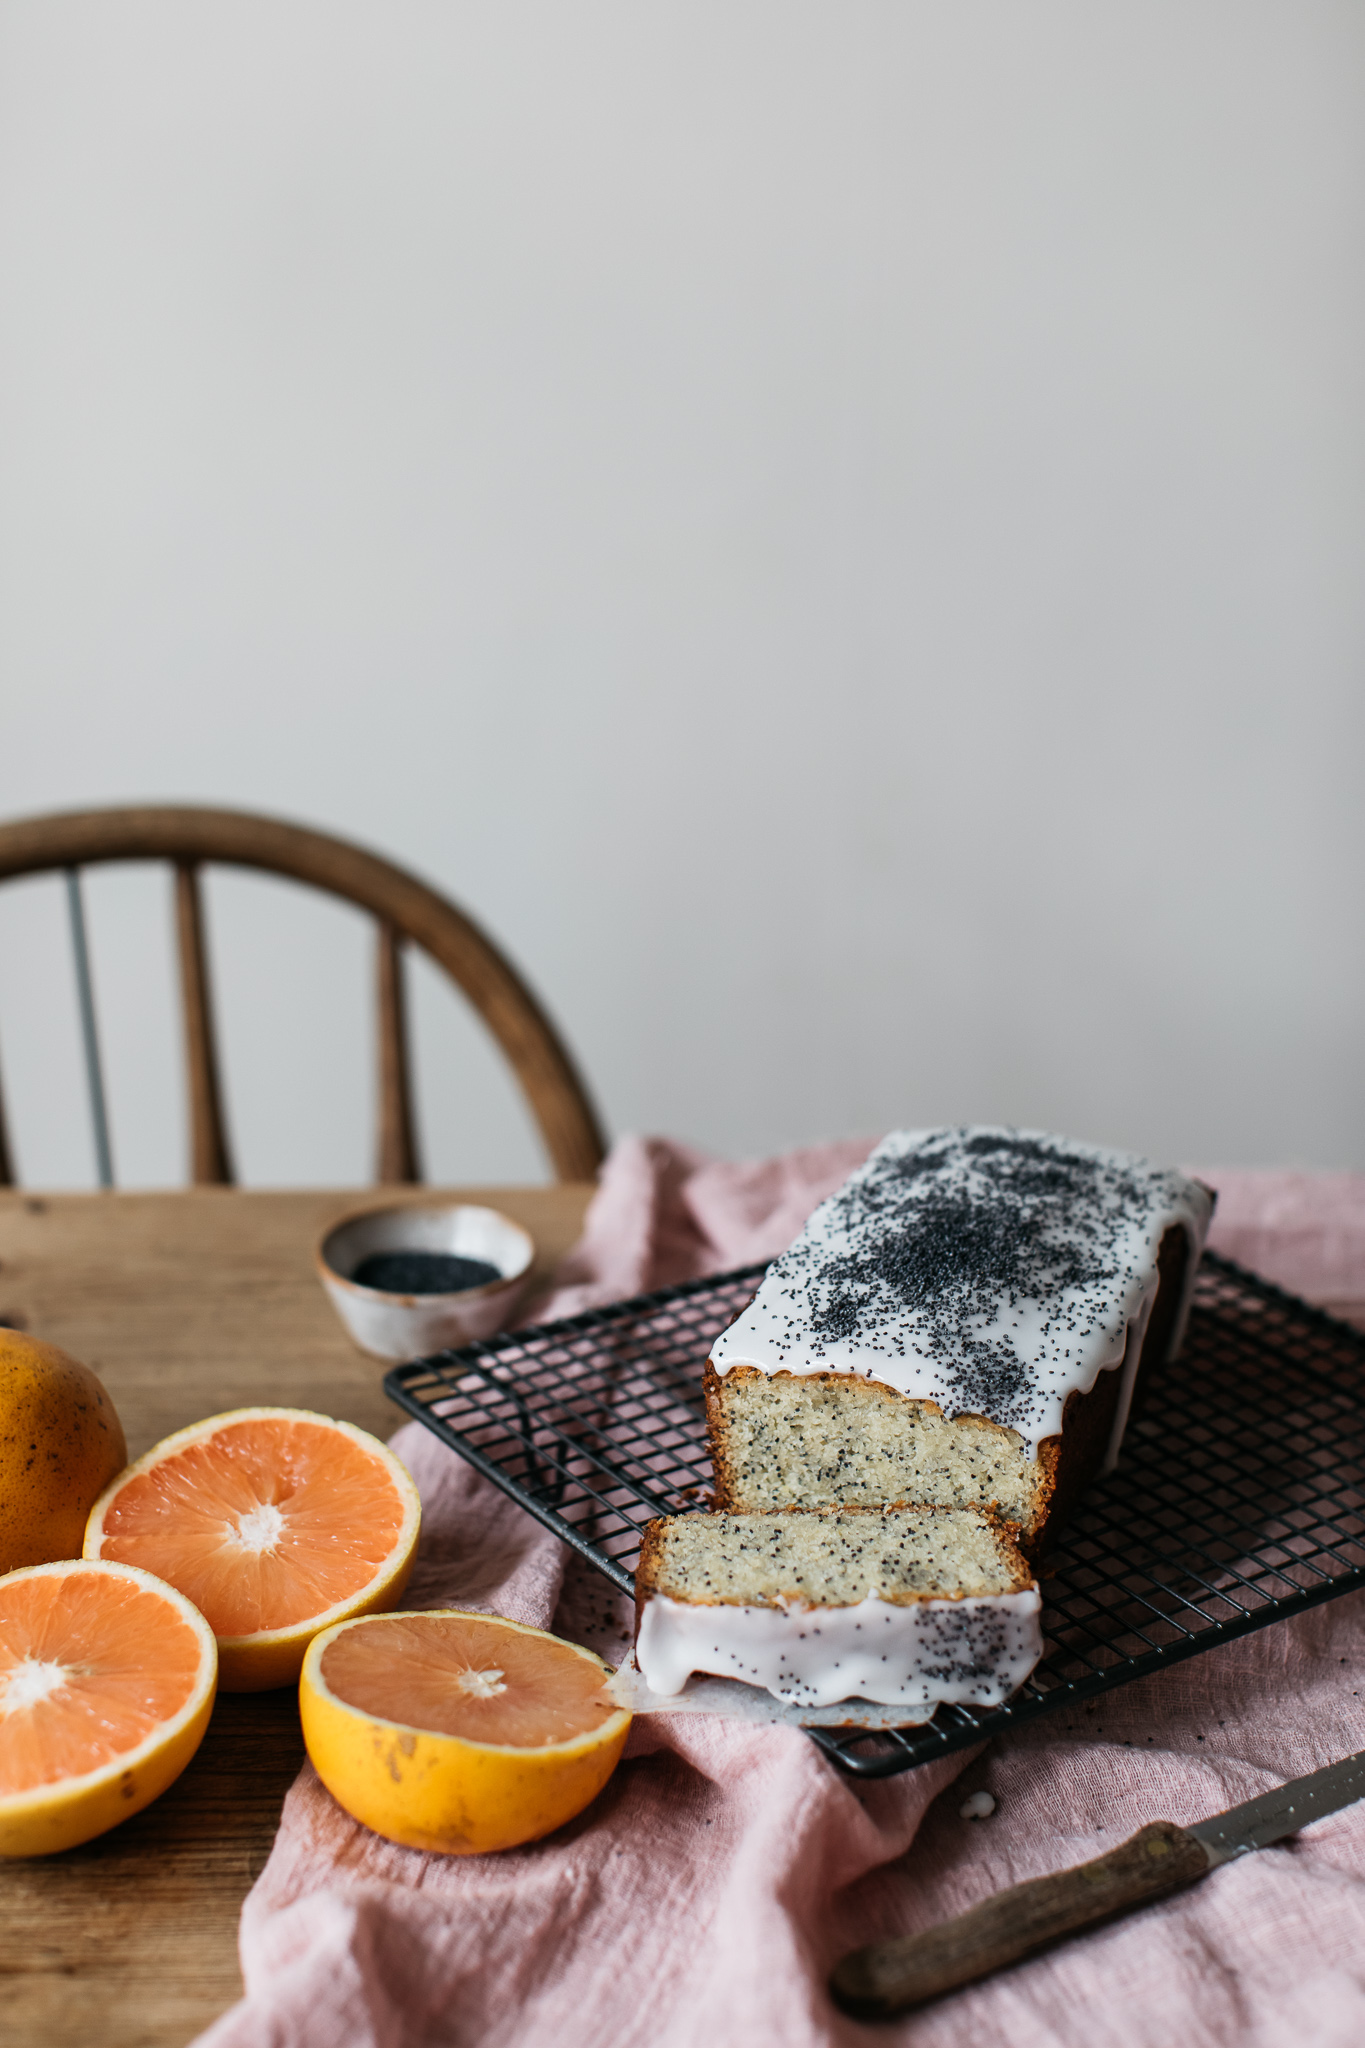 Low FODMAP gluten free grapefruit and poppy seed loaf cake